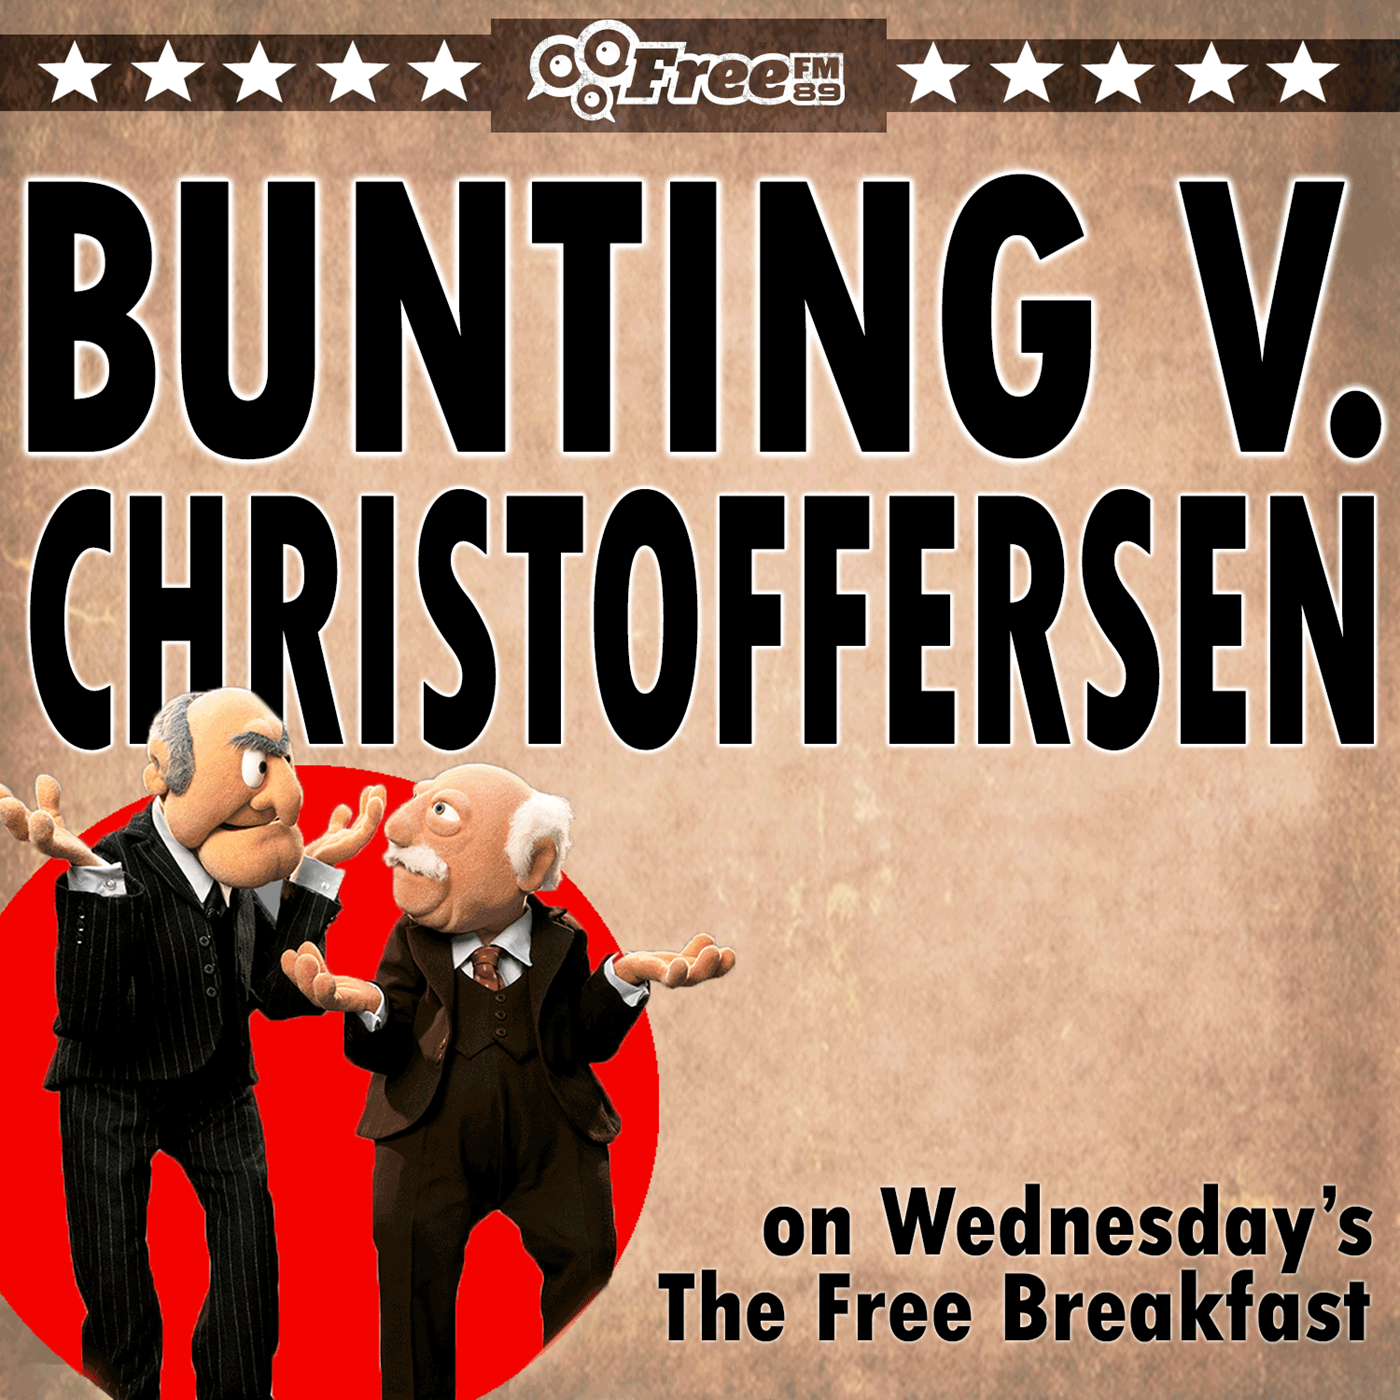 https://cdn.accessradio.org/StationFolder/freefm89/Images/BuntingVChristoffersen.png